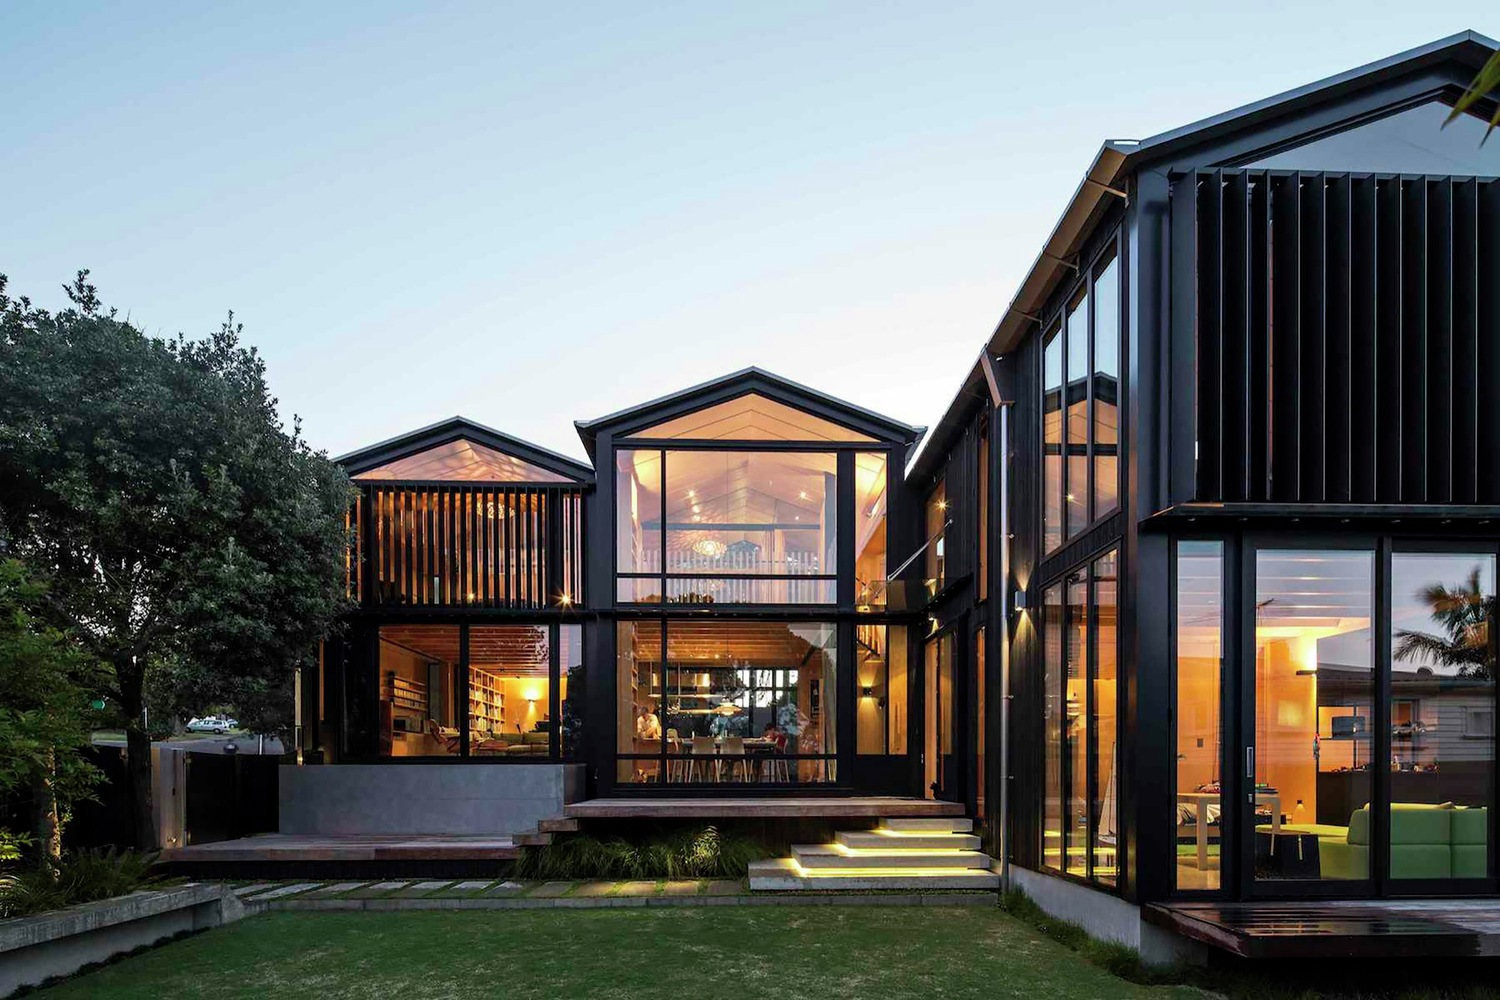 Boat sheds by strachan group architects rachael rush in for Design house architecture nz